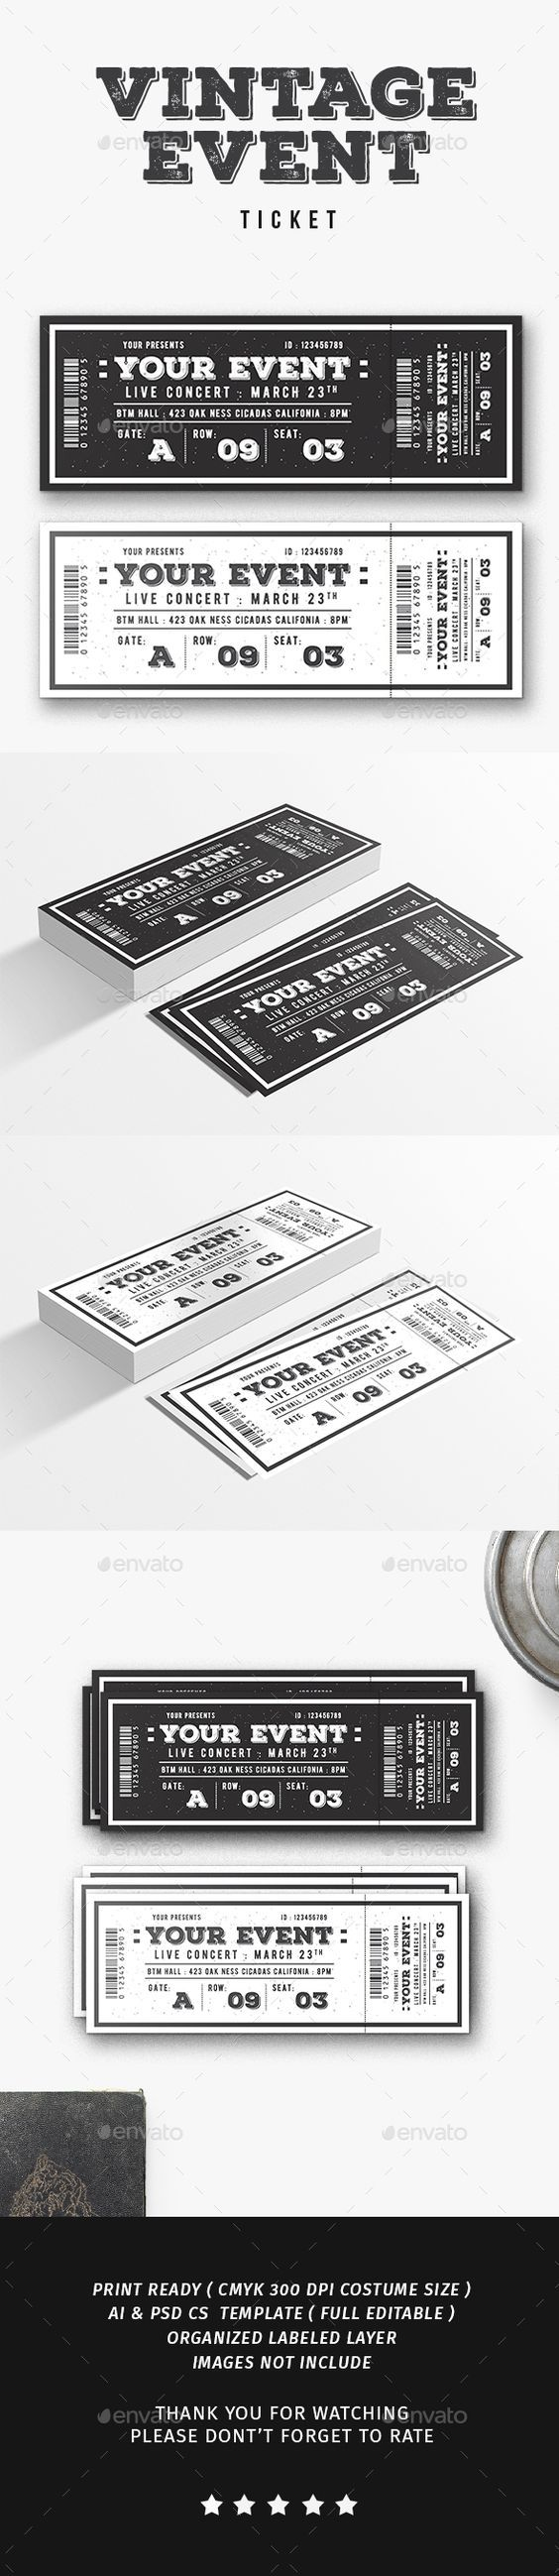 Concert Ticket Template Free Download New Vintage Event Ticket  Event Ticket